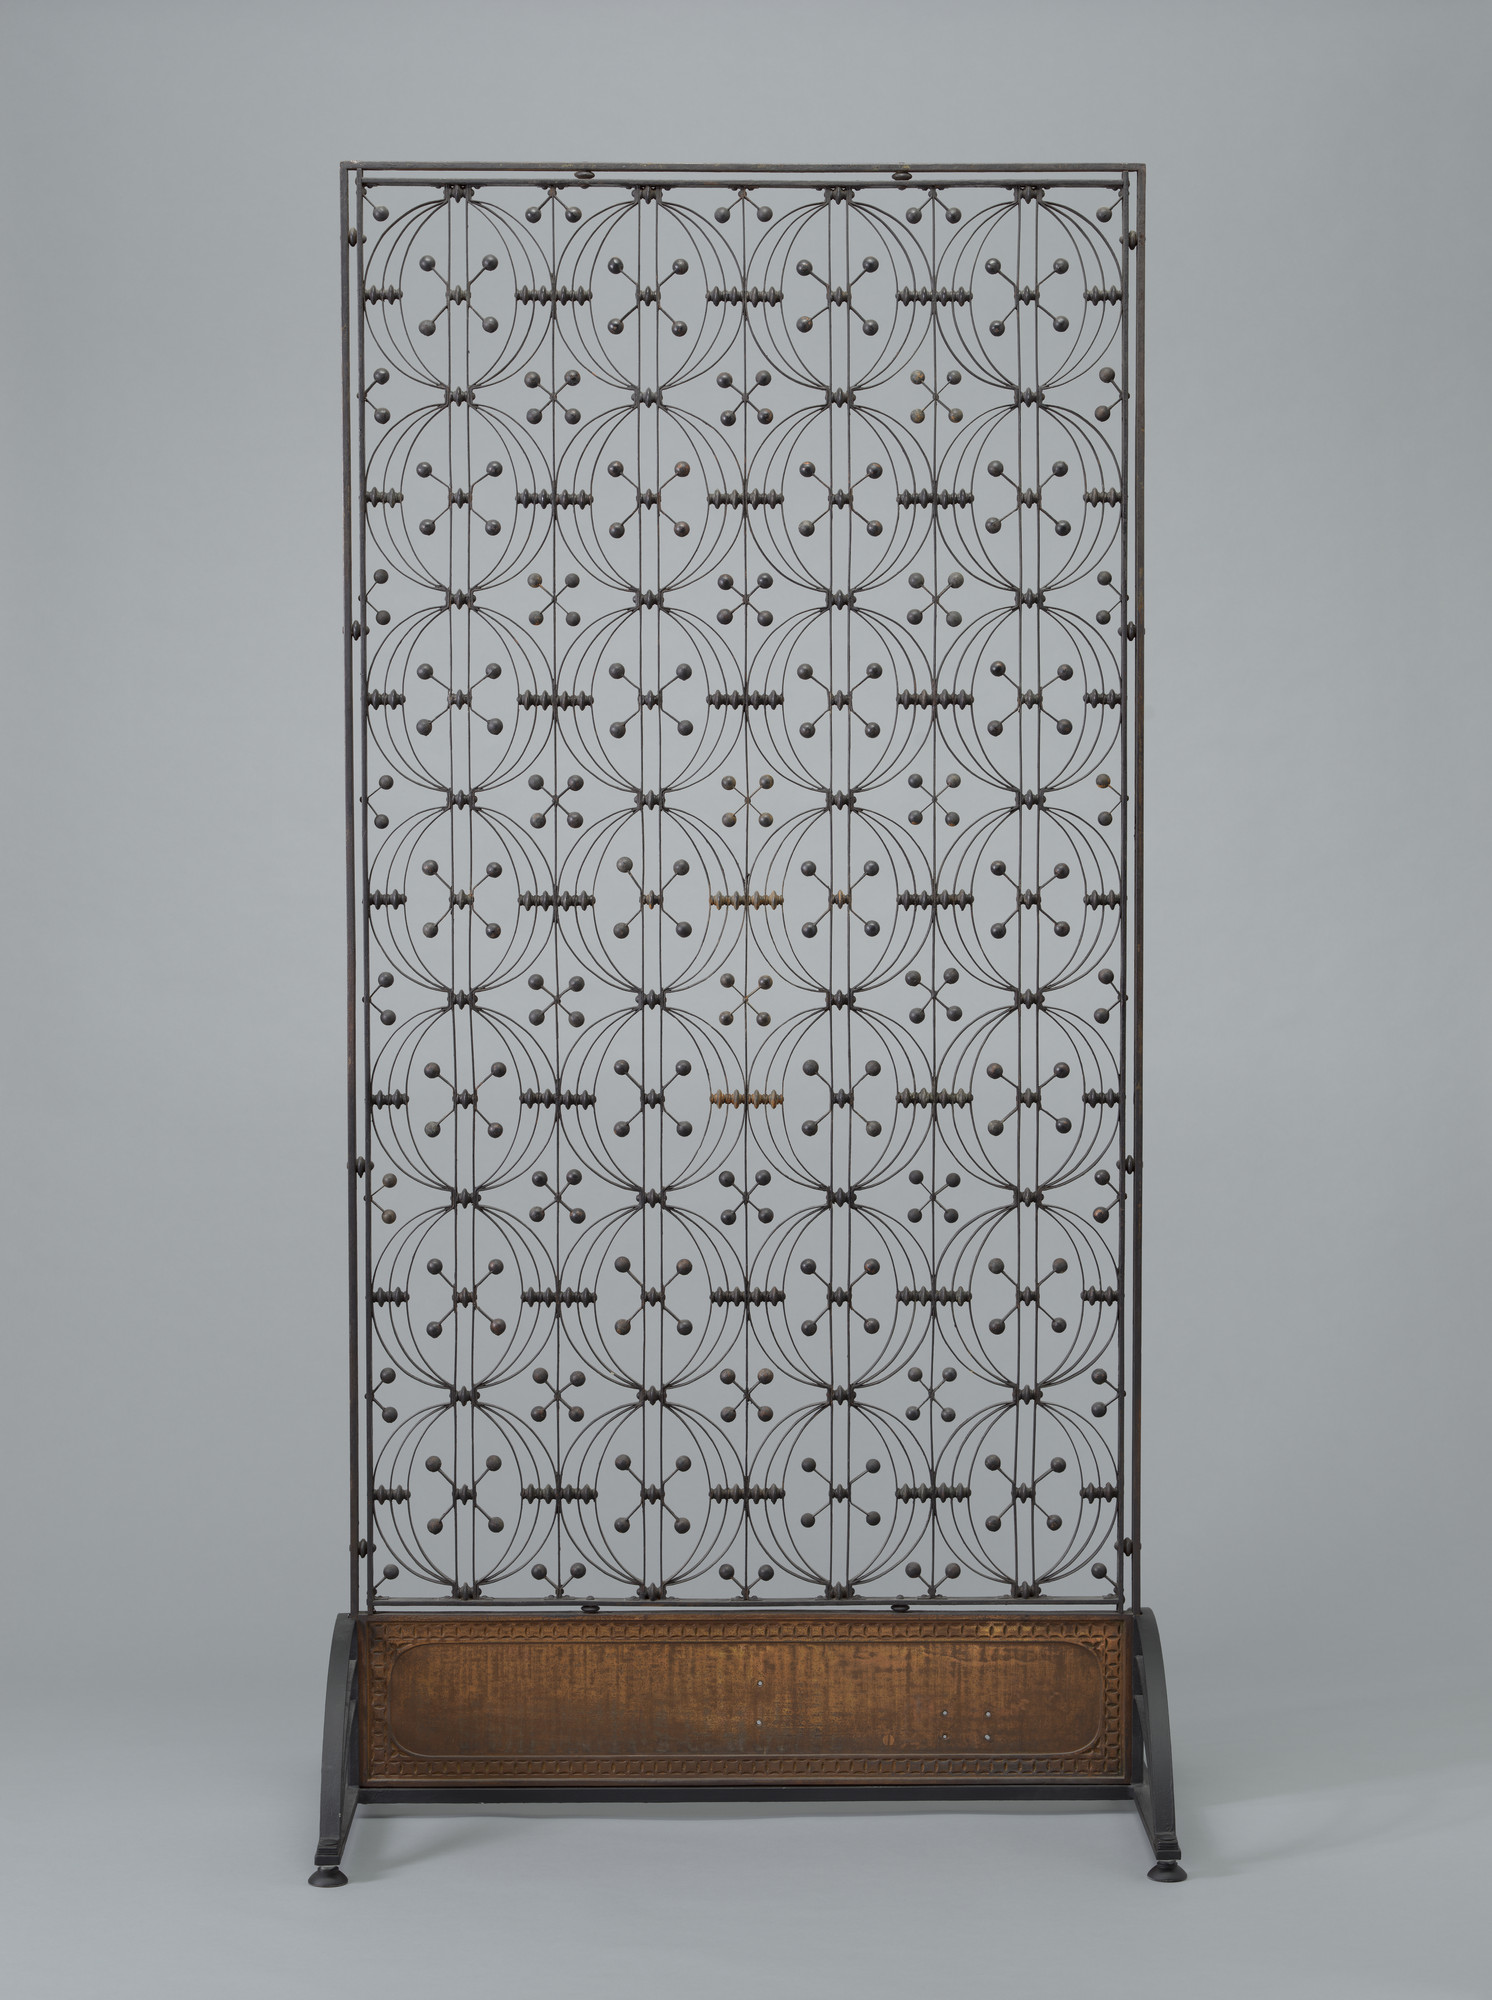 Louis Sullivan. Elevator Grille from the Chicago Stock Exchange, Chicago, Illinois. 1893